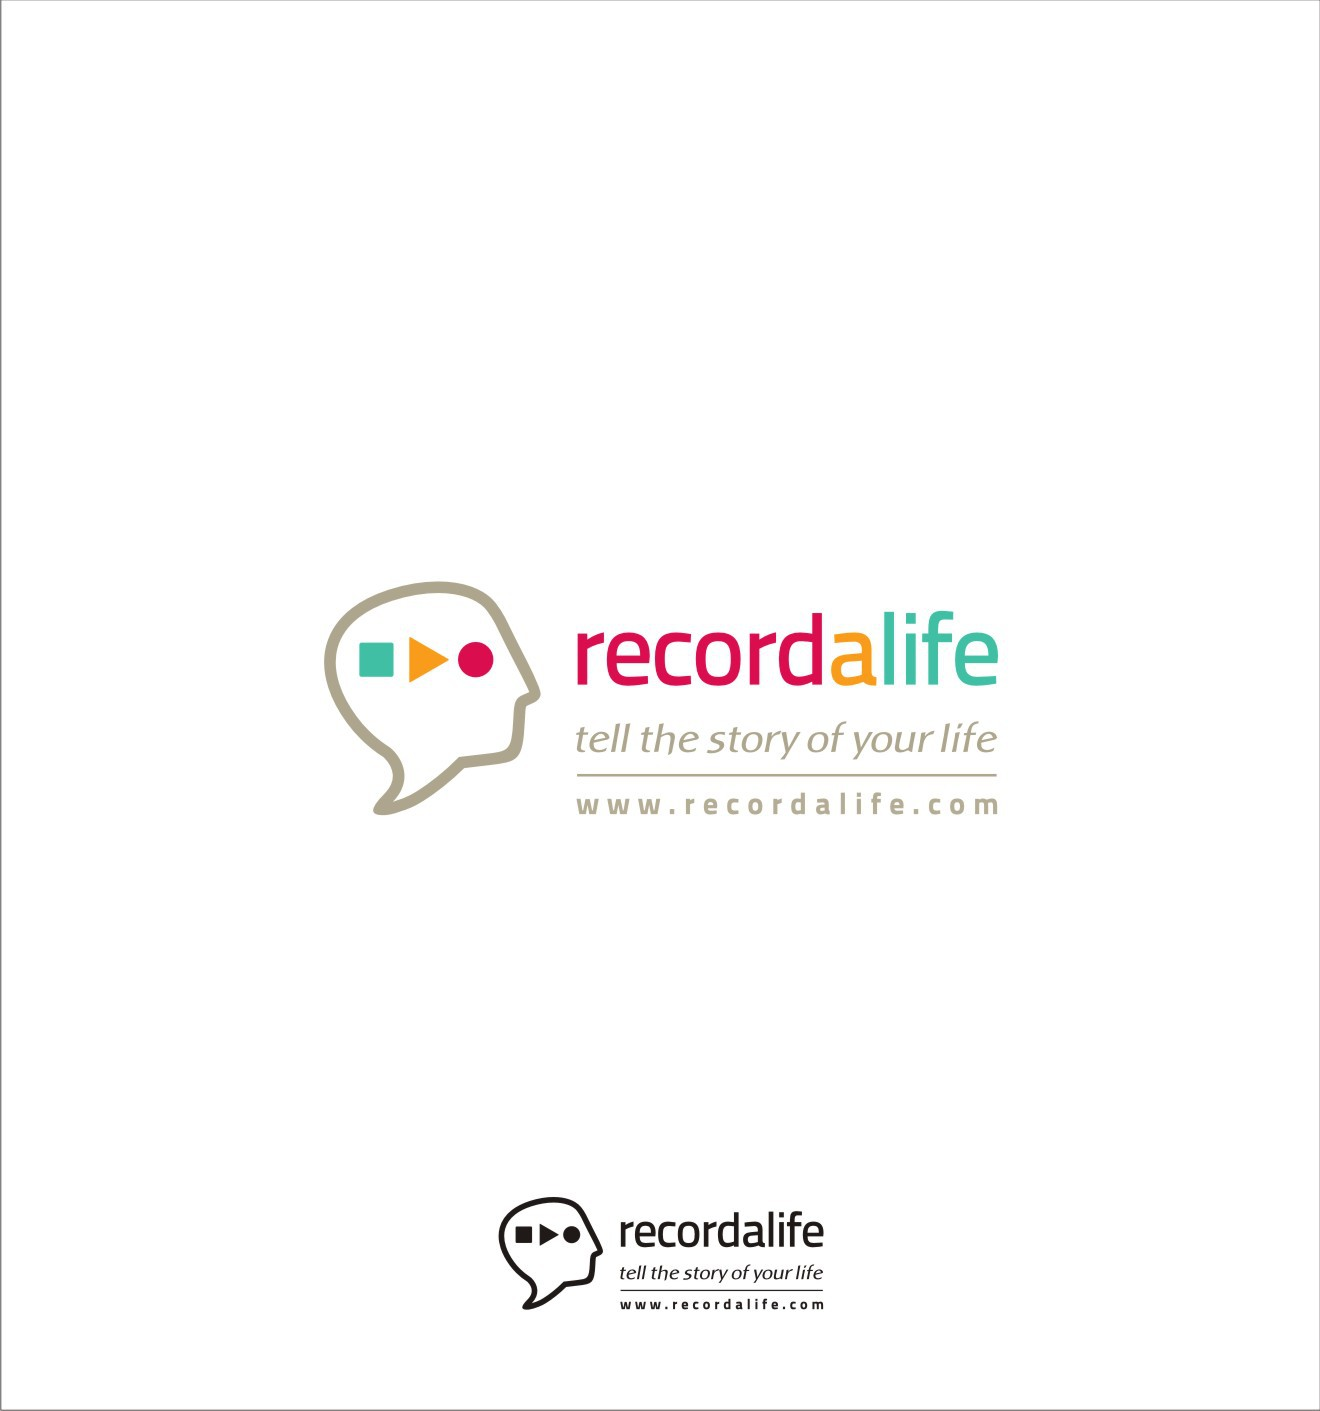 Design a friendly logo for Recordalife - we capture people's life stories